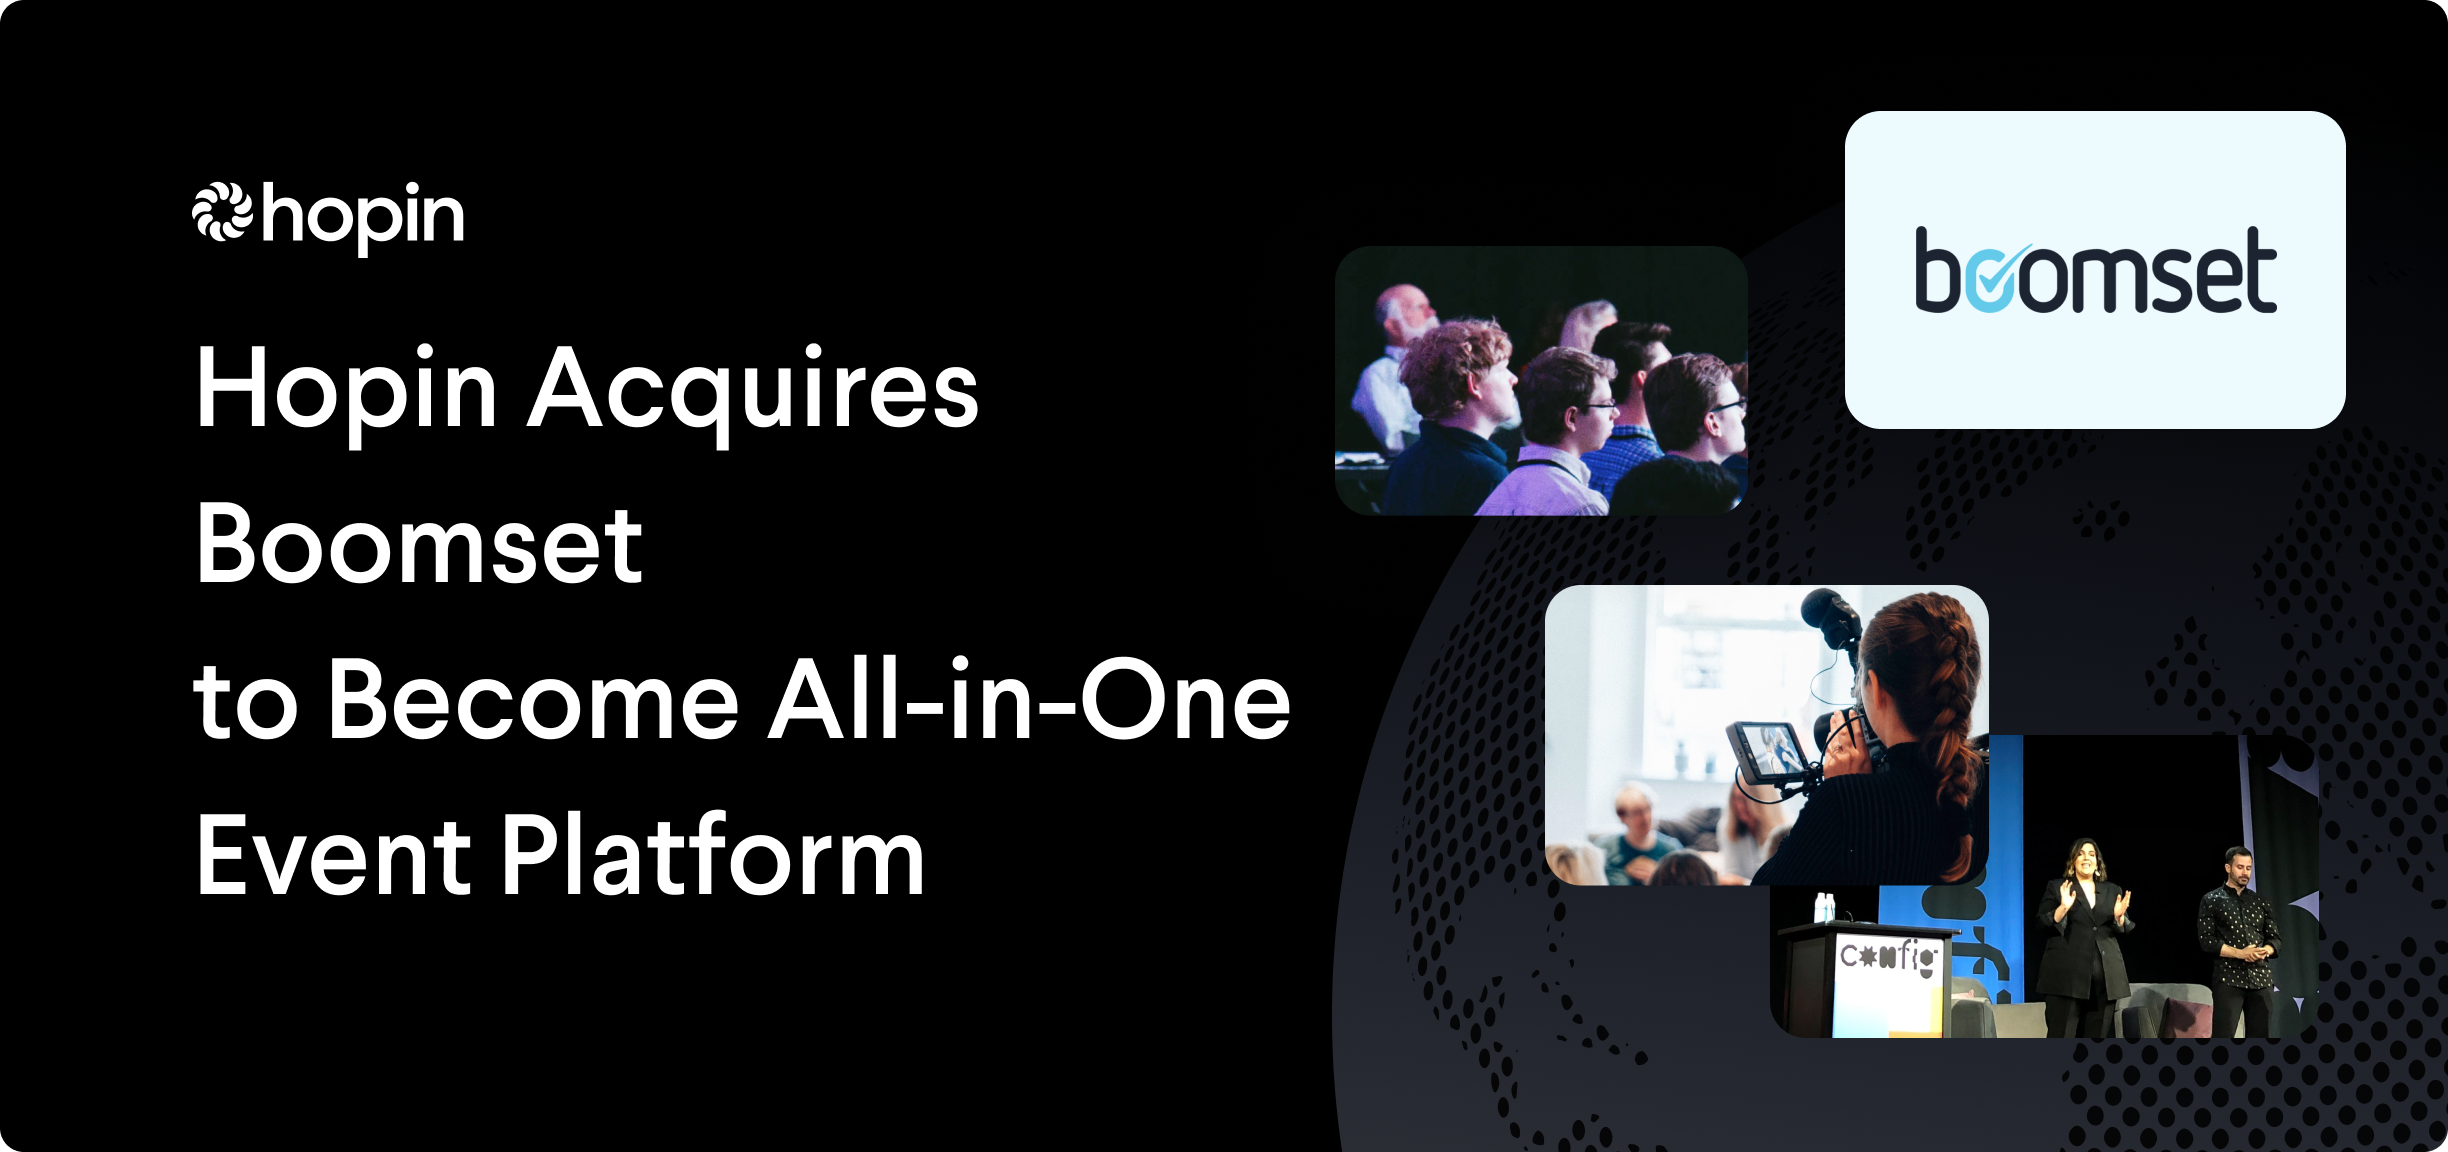 Hopin is expanding beyond virtual events with the acquisition of Boomset—becoming an all-in-one event management platform that now offers onsite capabilities for hybrid and in-person events.